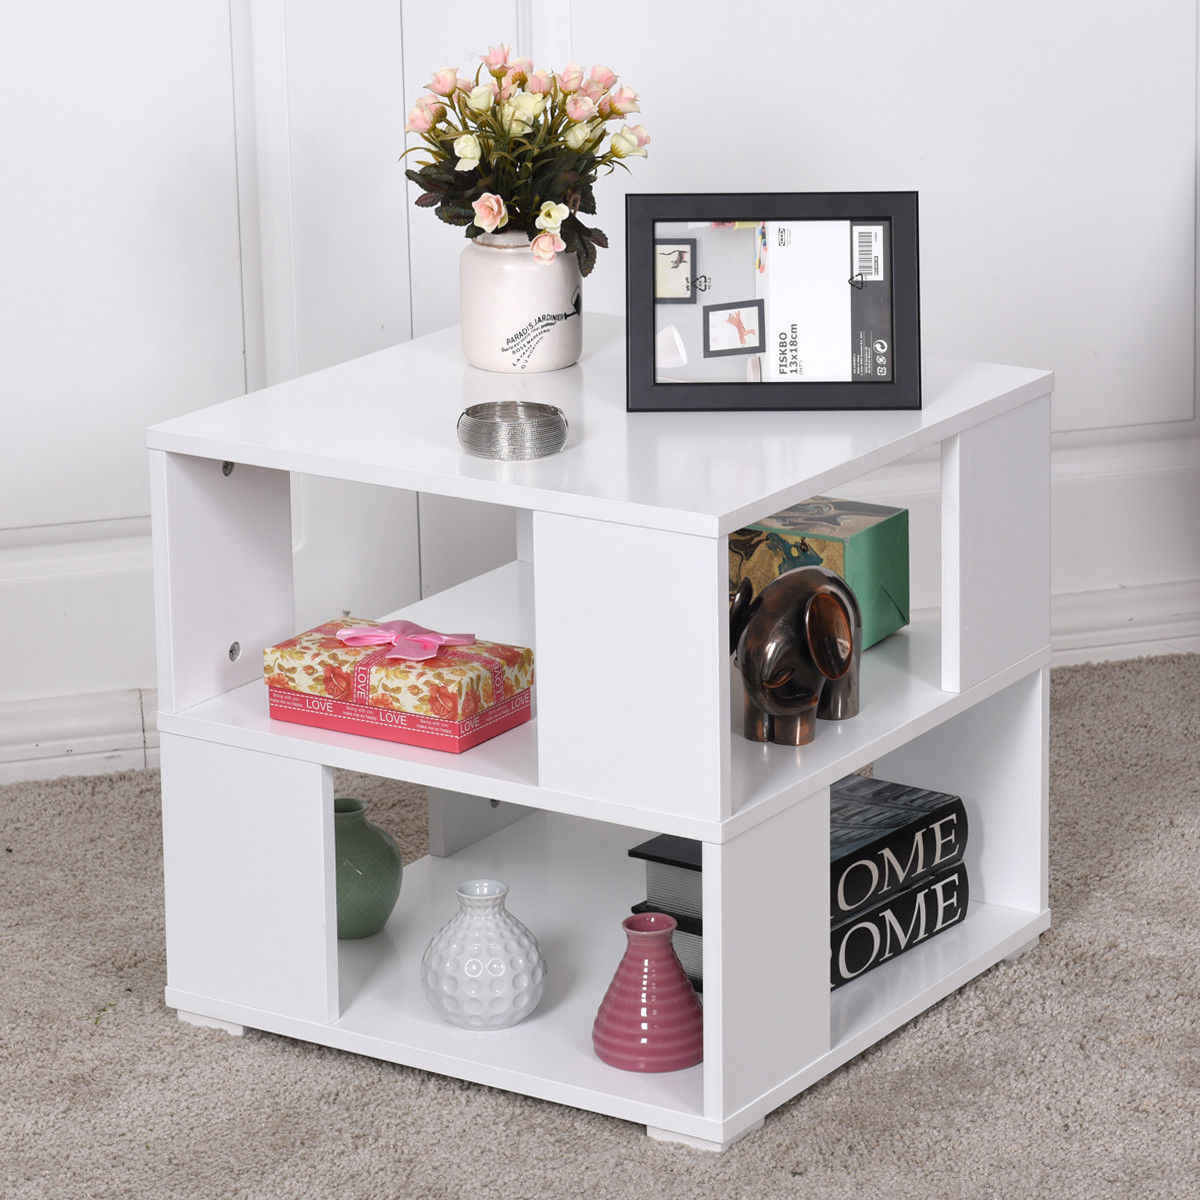 Giantex Modern Wood Square Coffee Table Living Room White End Side Table with Storage Cube Shelves HW57014